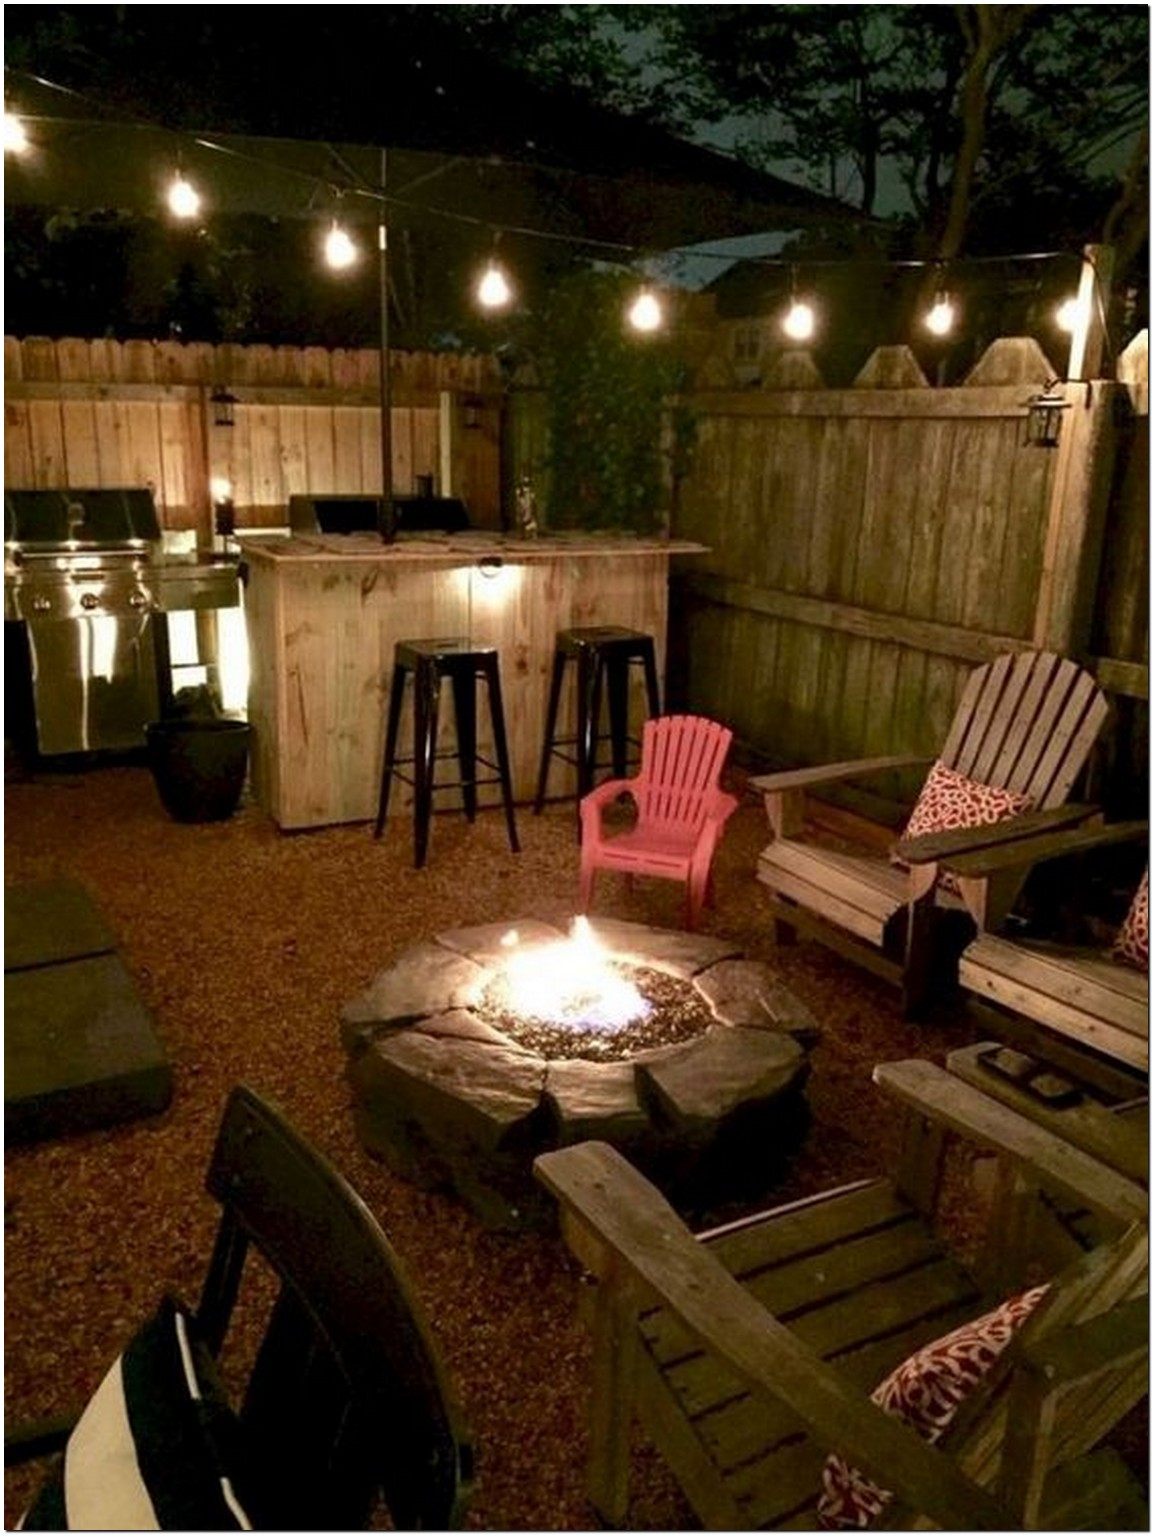 30 Extraordinary Ideas for Small Backyard Landscaping on a Budget